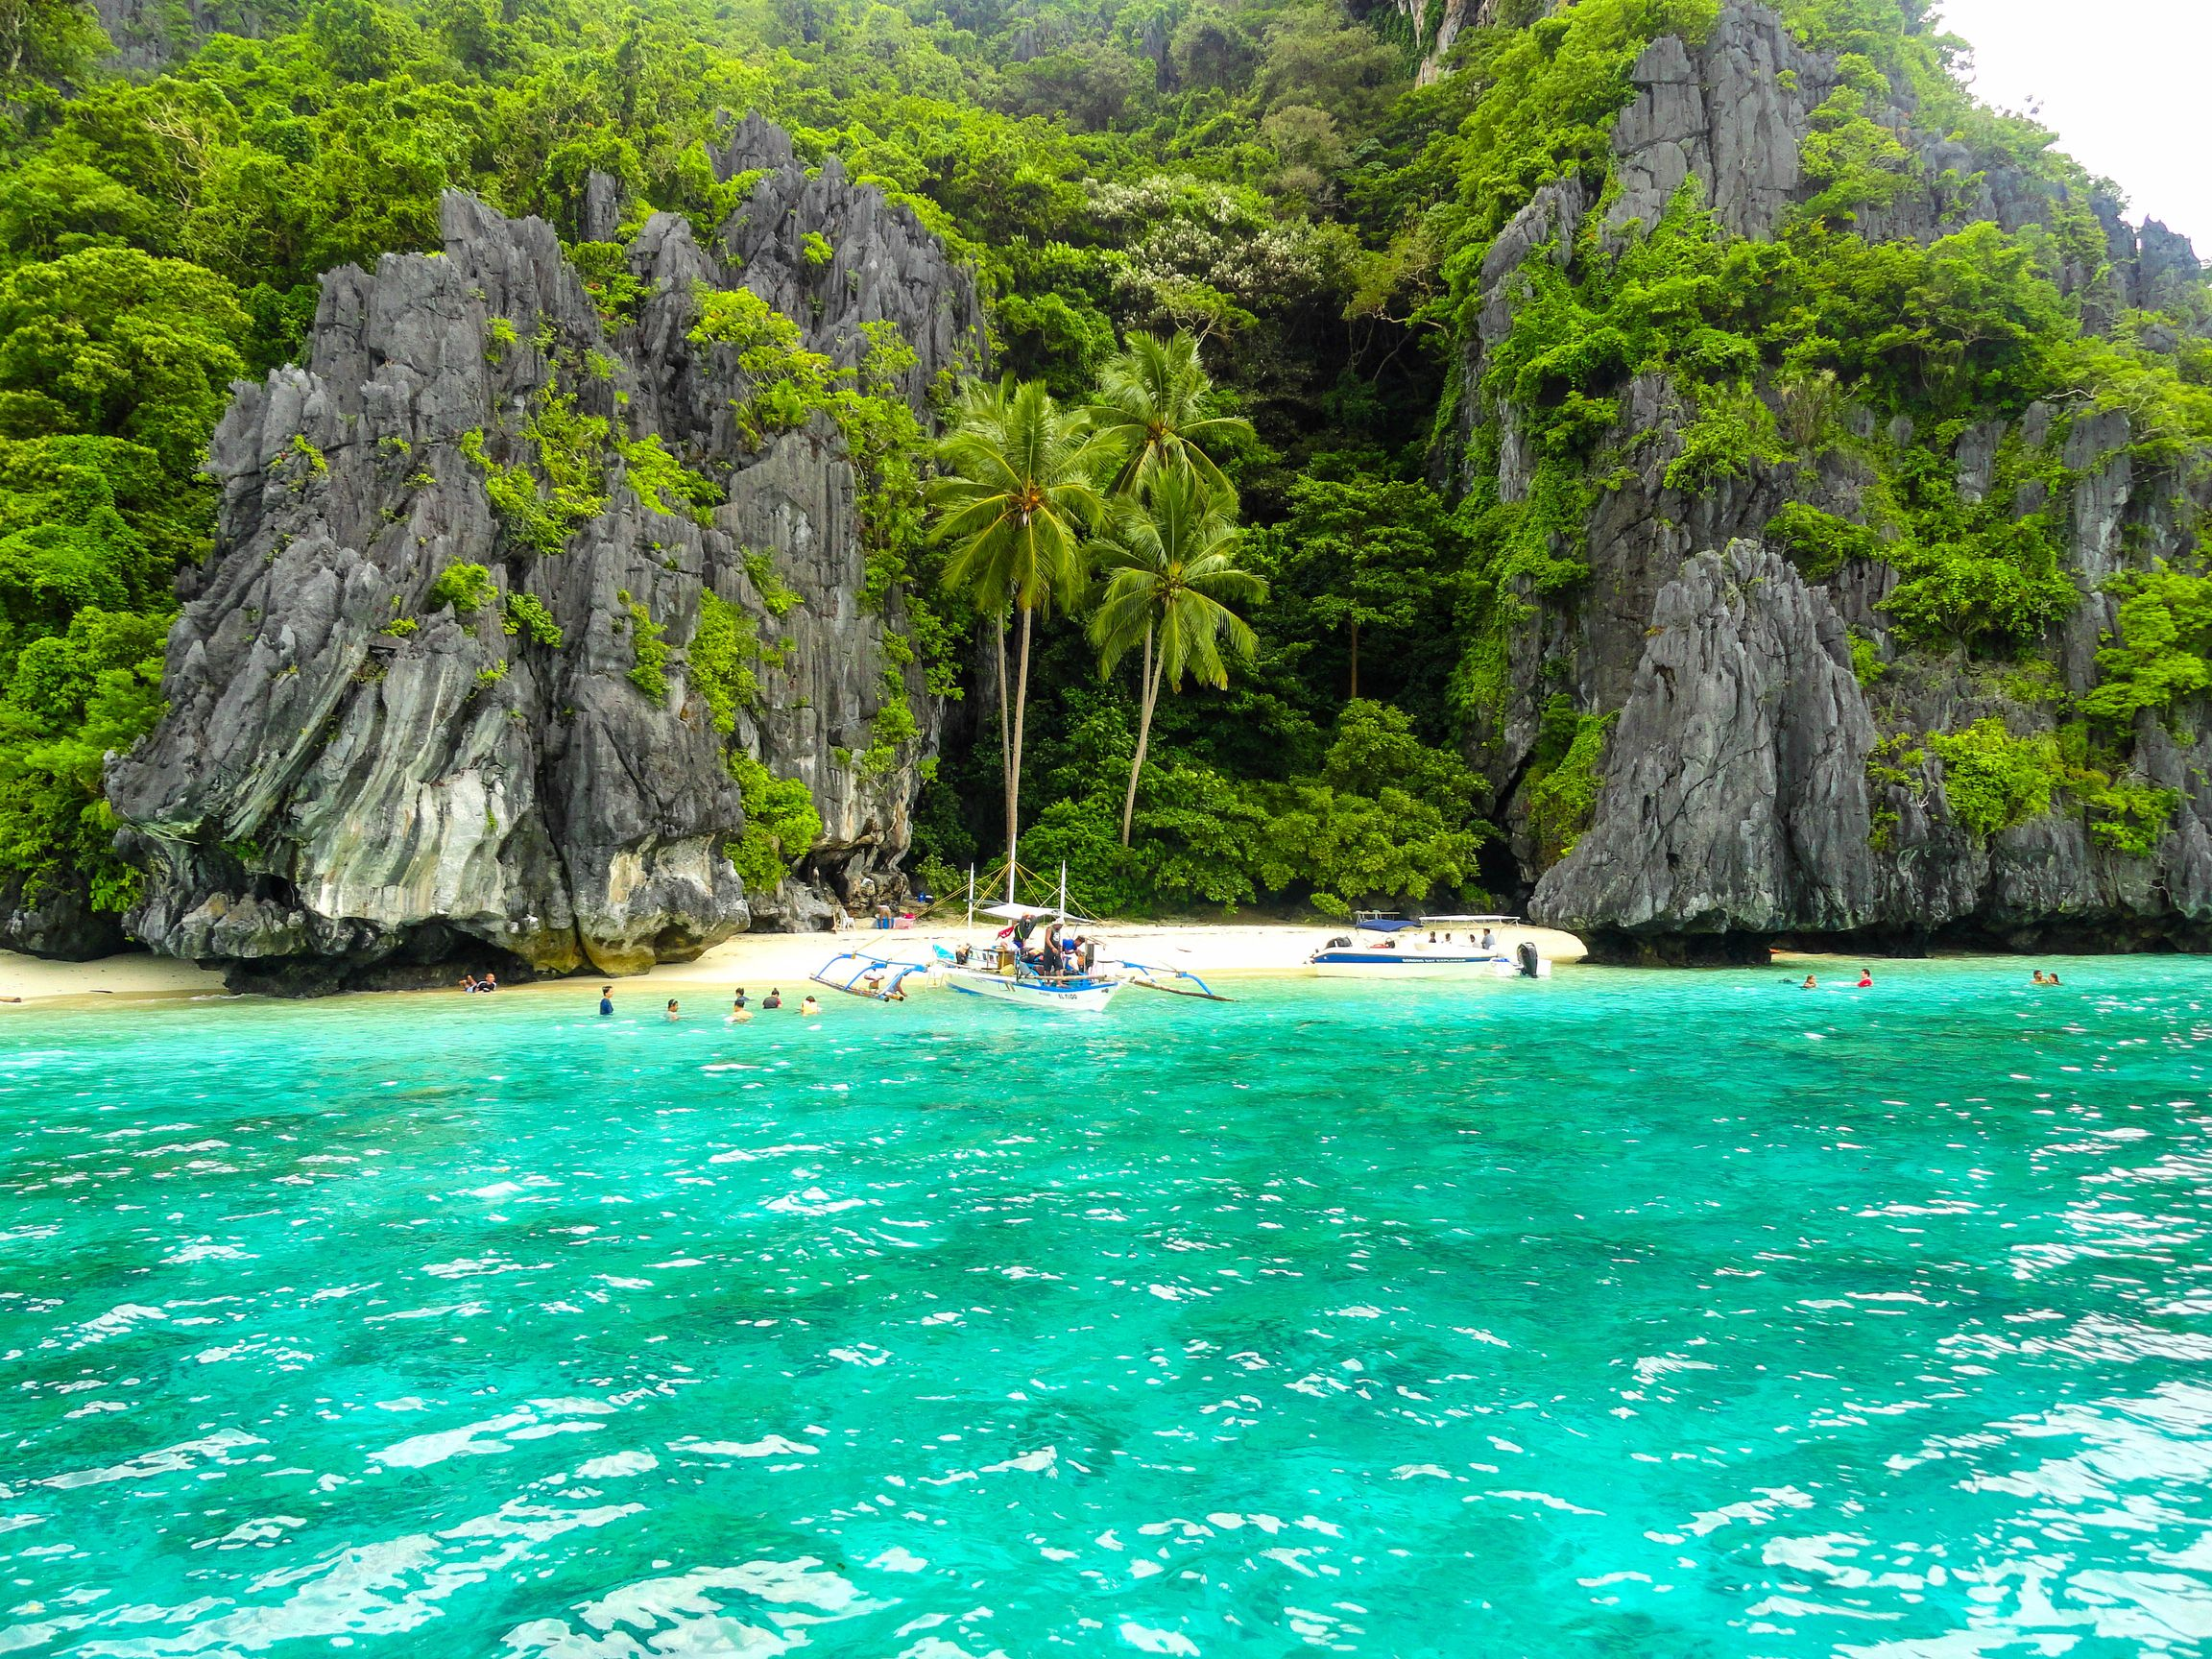 A white sand beach bounded between crystal clear turquoise waters and limestone cliffs clad with vegetation in El Nido, Palawan